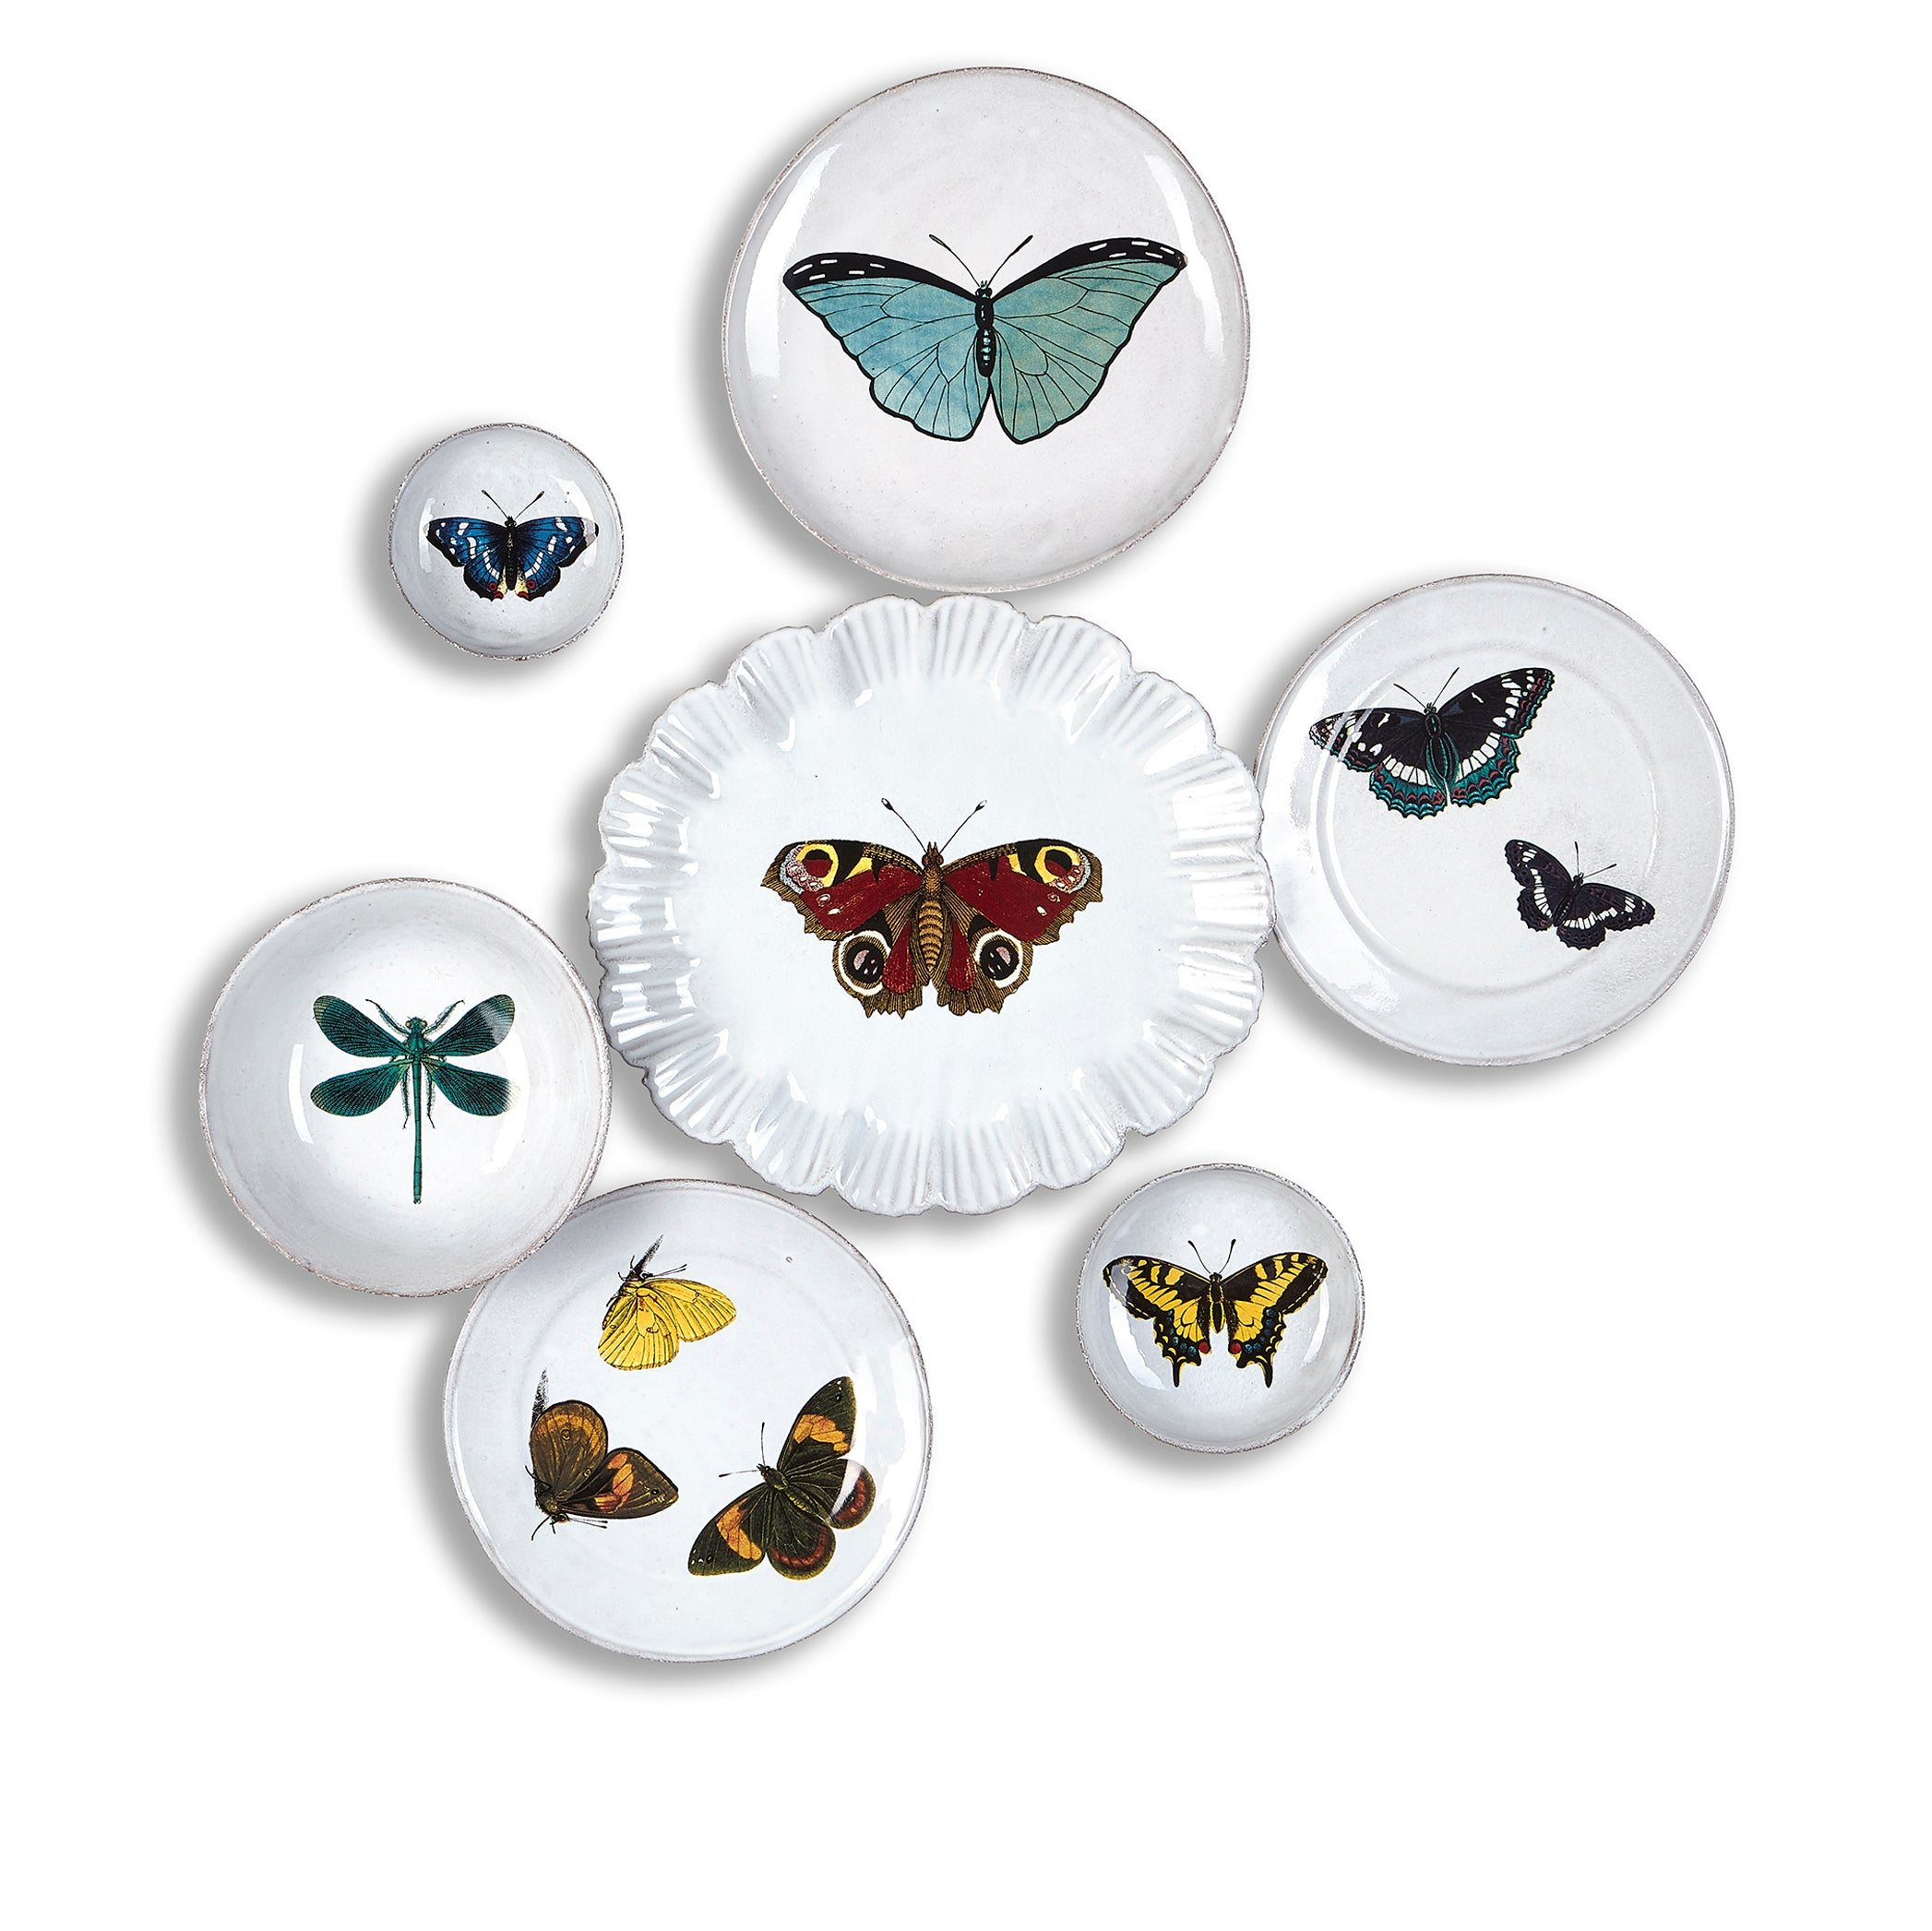 Two Flying Butterflies Plate by Astier de Villatte